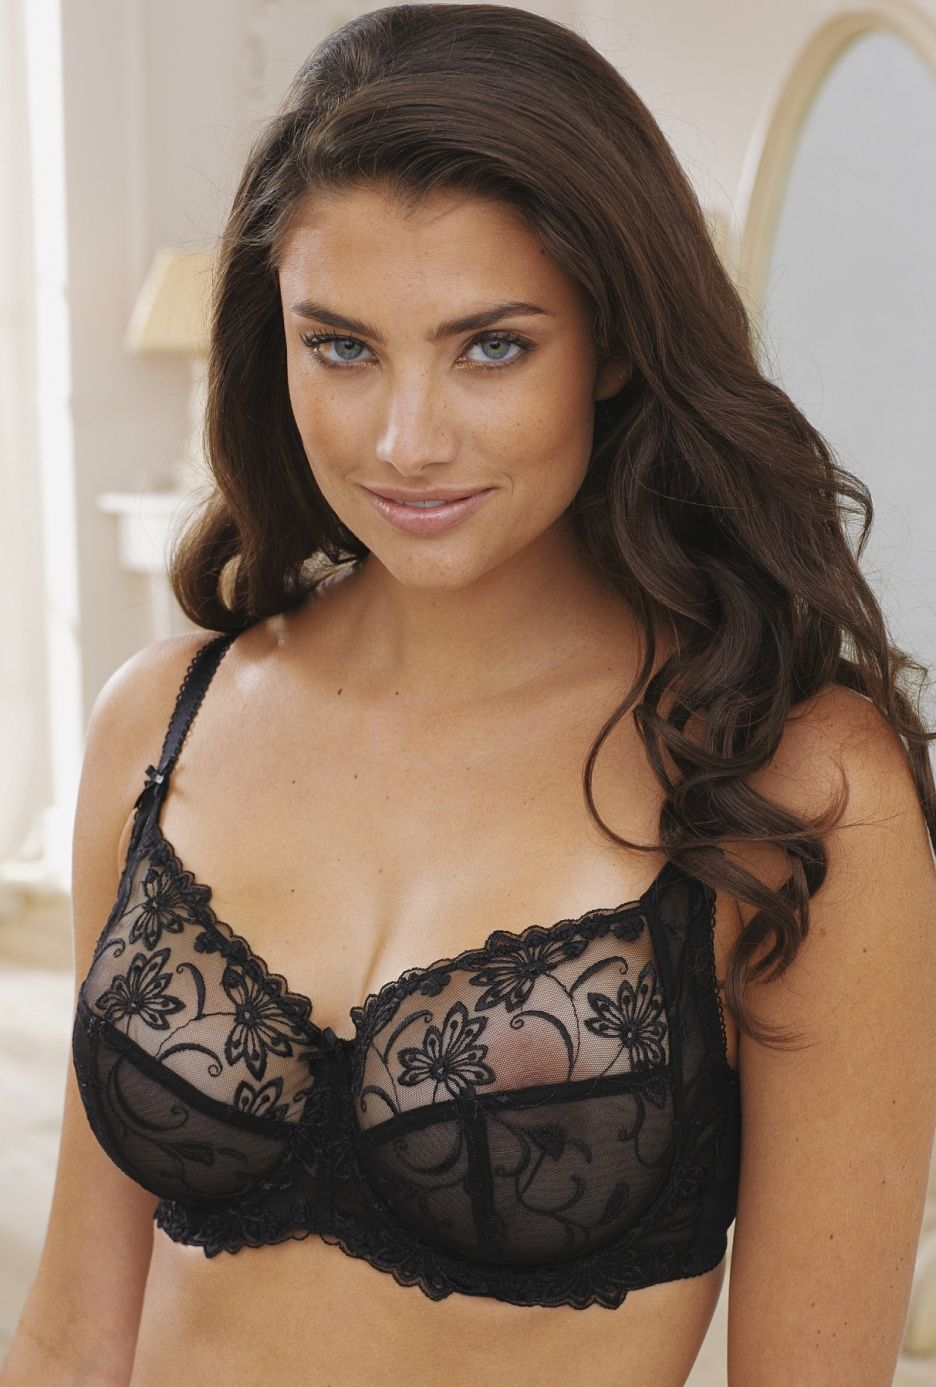 Lauren Mellor naked (35 foto and video), Tits, Sideboobs, Twitter, legs 2019